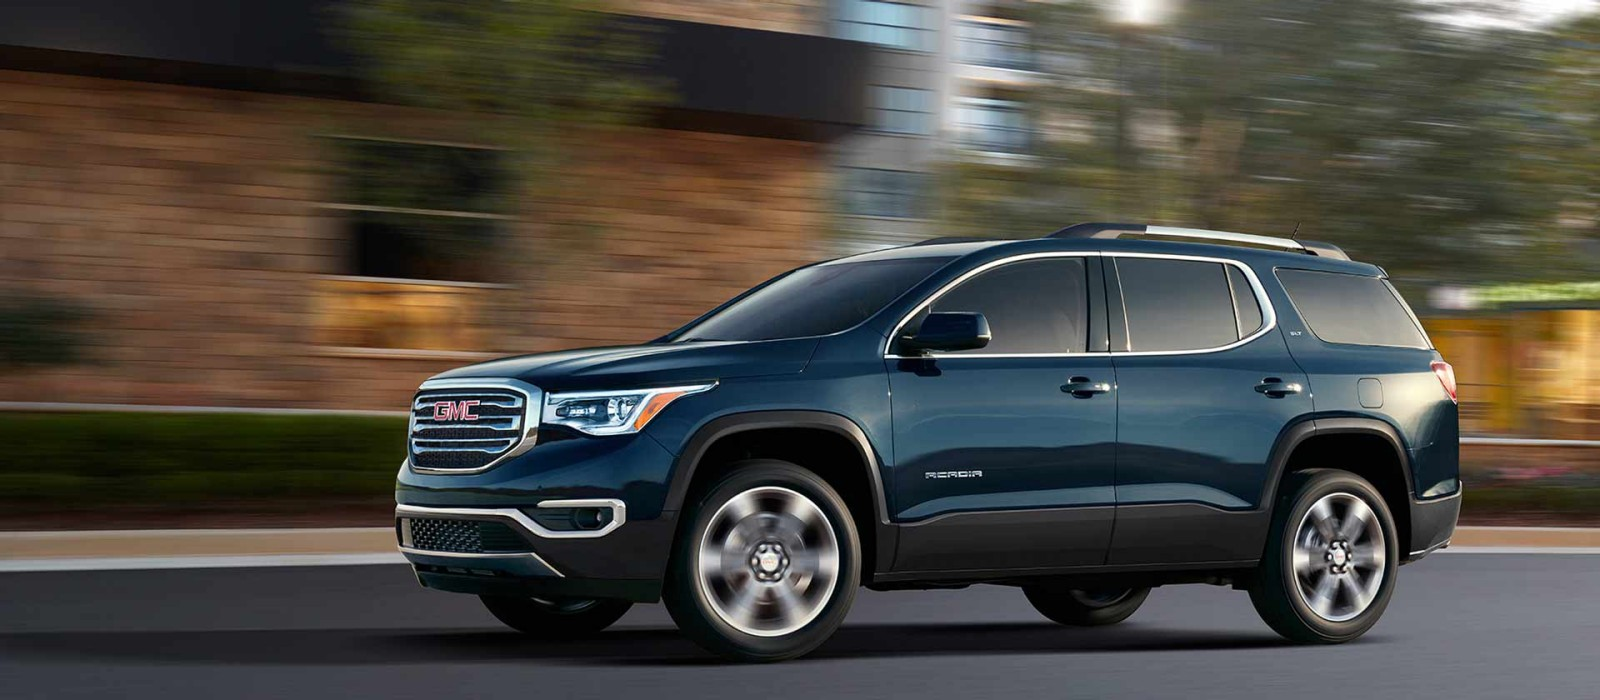 Gmc Acadia Towing Capacity >> Learn How To Achieve Maximum Towing Capacity With The New Gmc Acadia